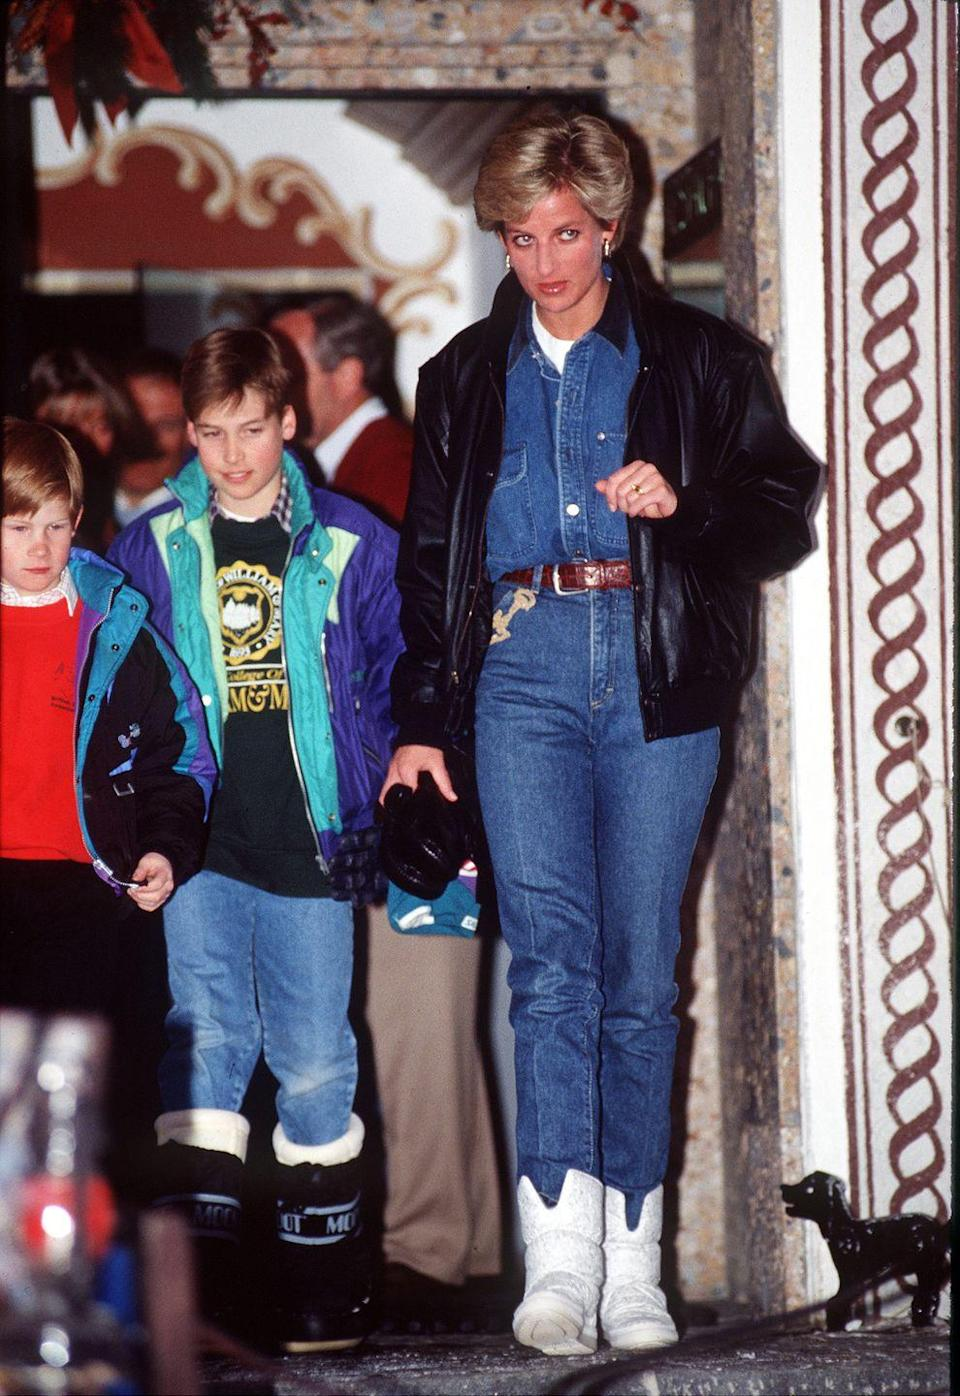 <p>Is this 90s apres-ski style at its best? Princess Diana wore double-denim on holiday in Lech, Austria with her sons in 1993. Peep William's Moon Boots, too! Meanwhile, we'll be scouring charity shops for a leather bomber jacket like Diana's.</p>